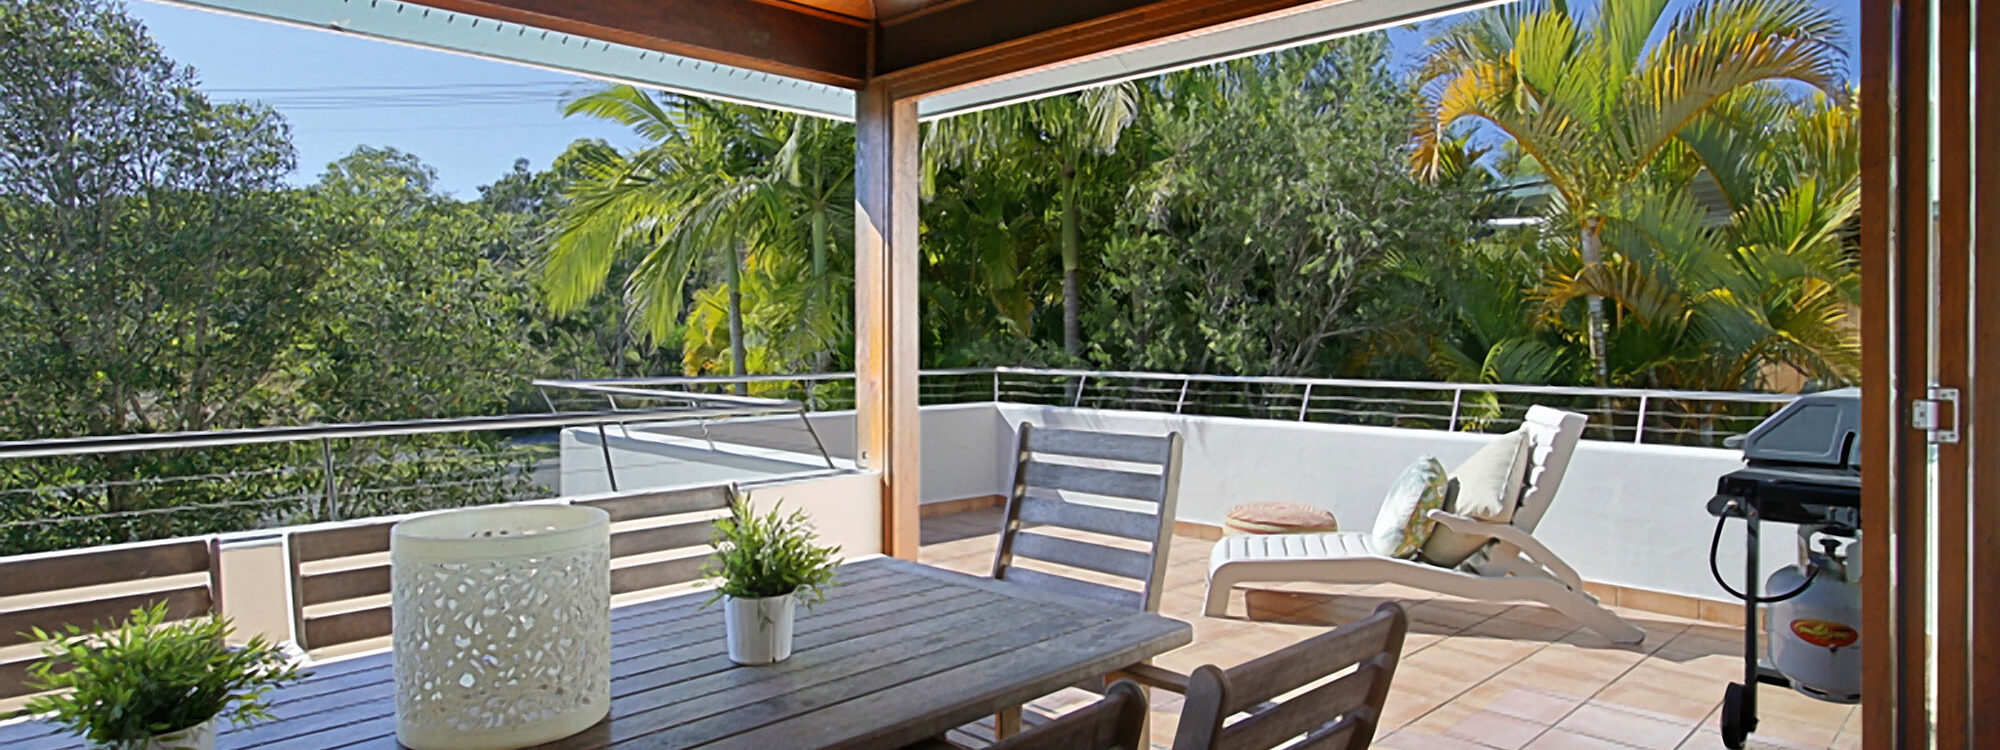 Clarkes Beach Villa - Outdoor Dining & BBQ